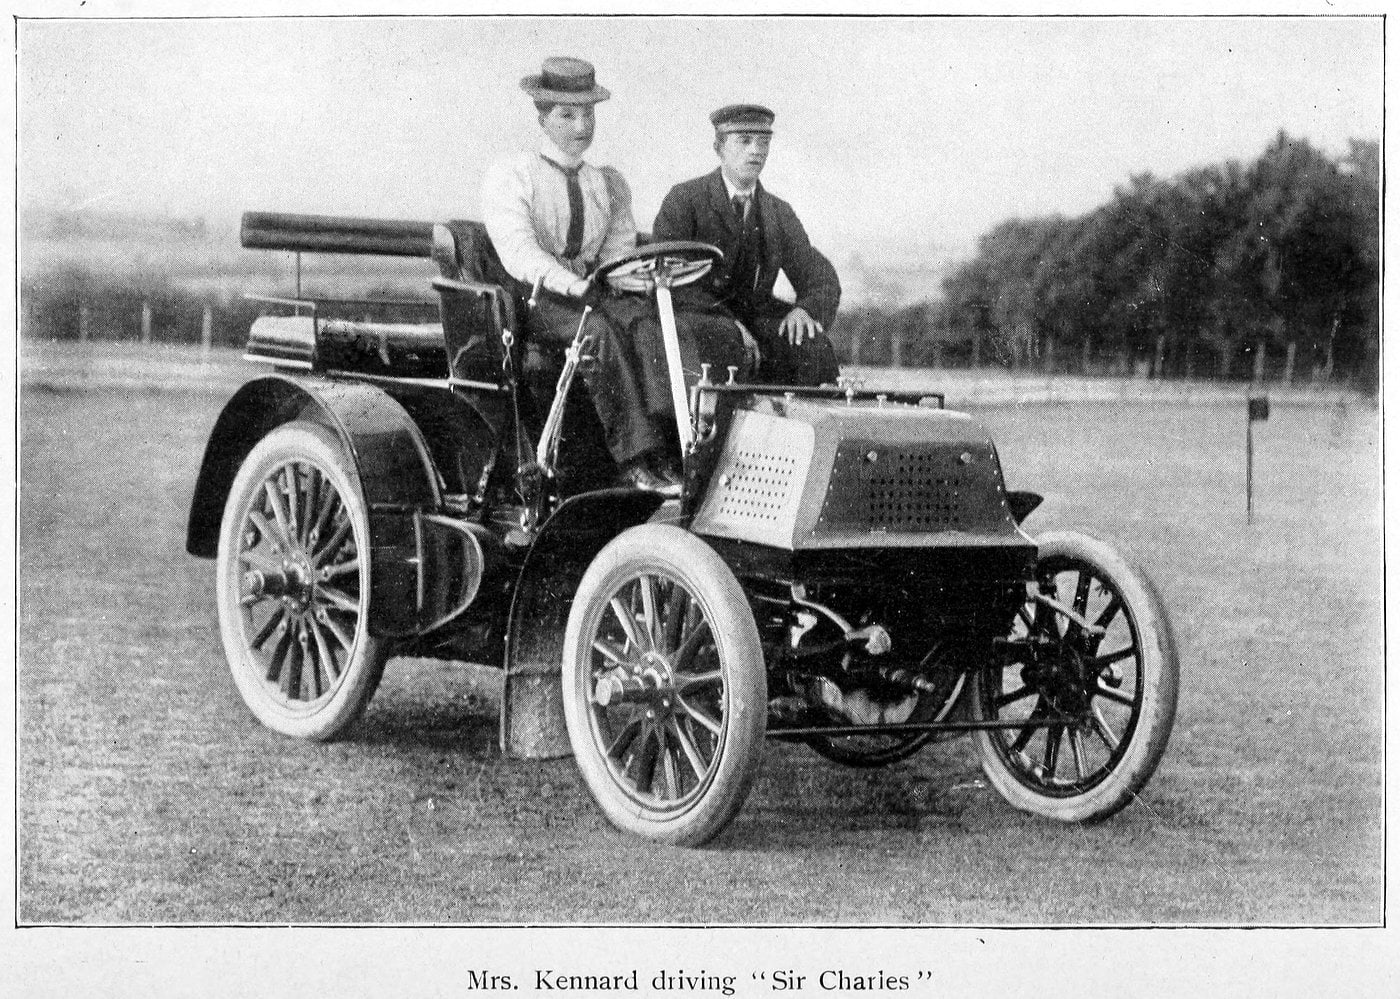 Mrs. Kennard driving automobile named Sir Charles (1902)